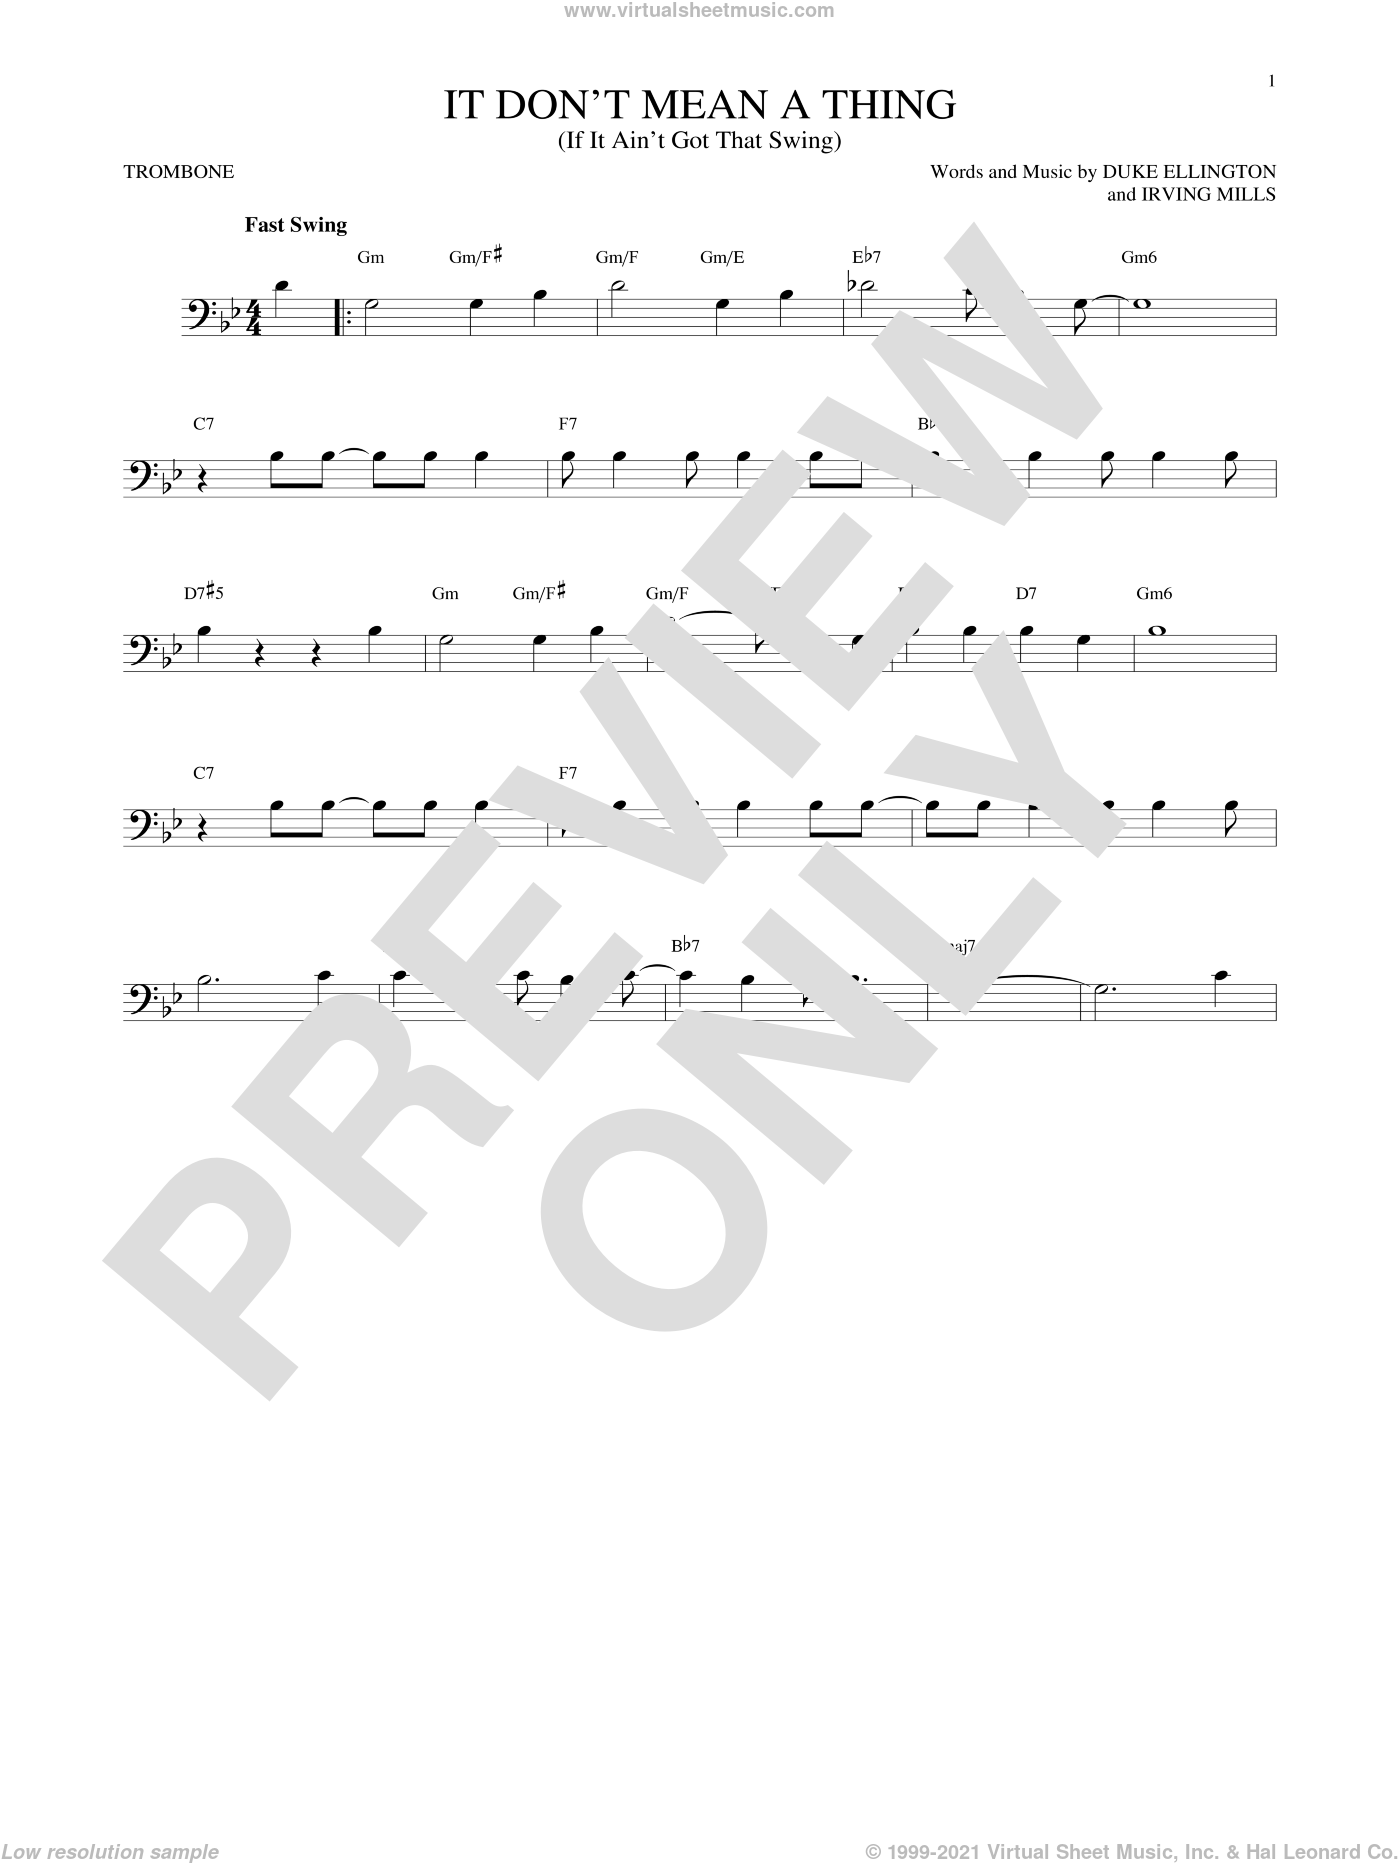 It Don't Mean A Thing (If It Ain't Got That Swing) sheet music for trombone solo by Duke Ellington and Irving Mills, intermediate skill level